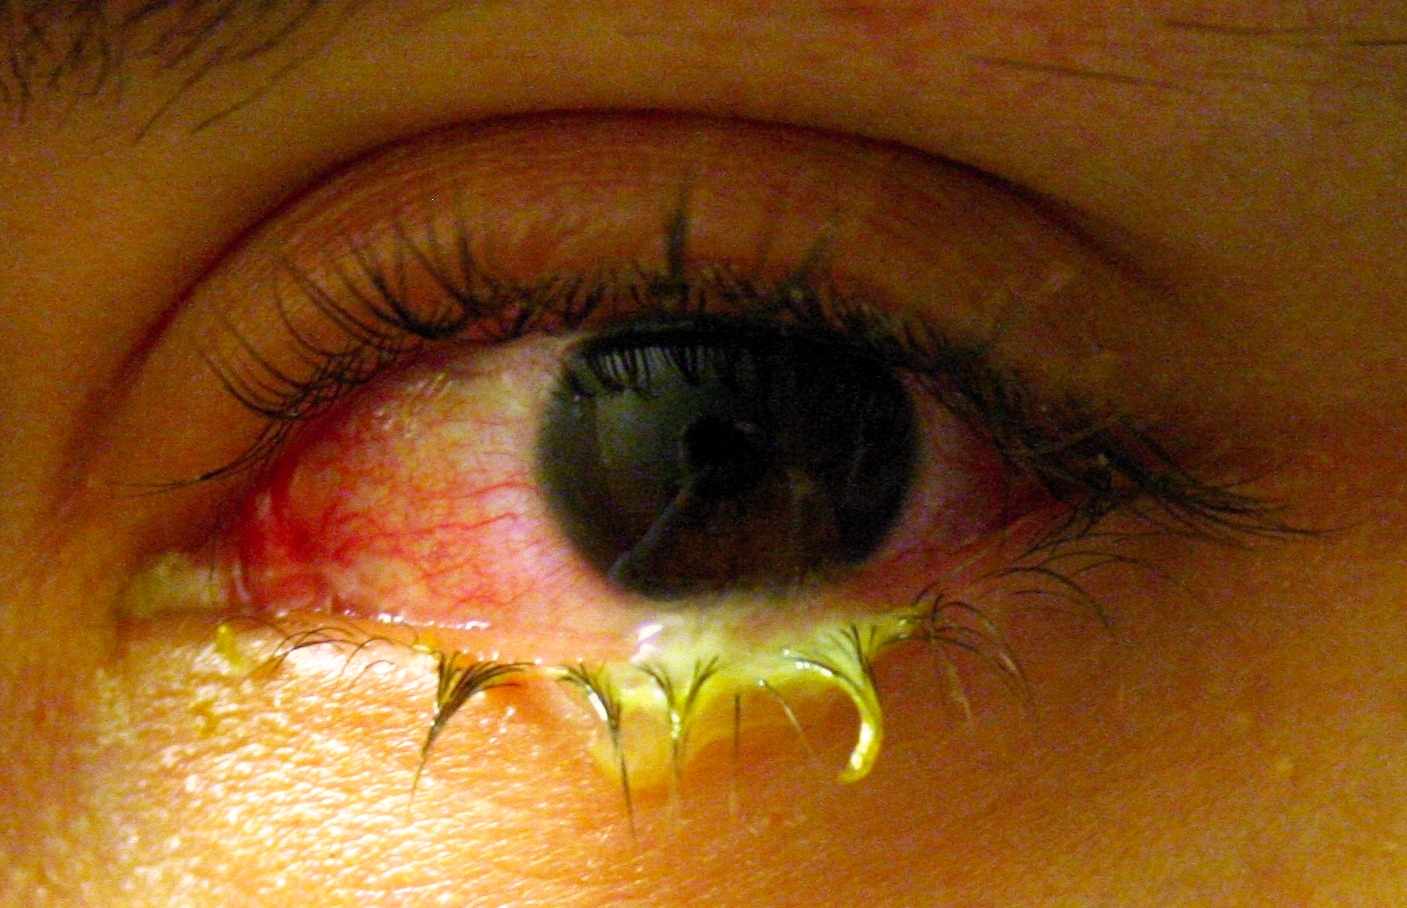 Swollen_eye_with_conjunctivitis